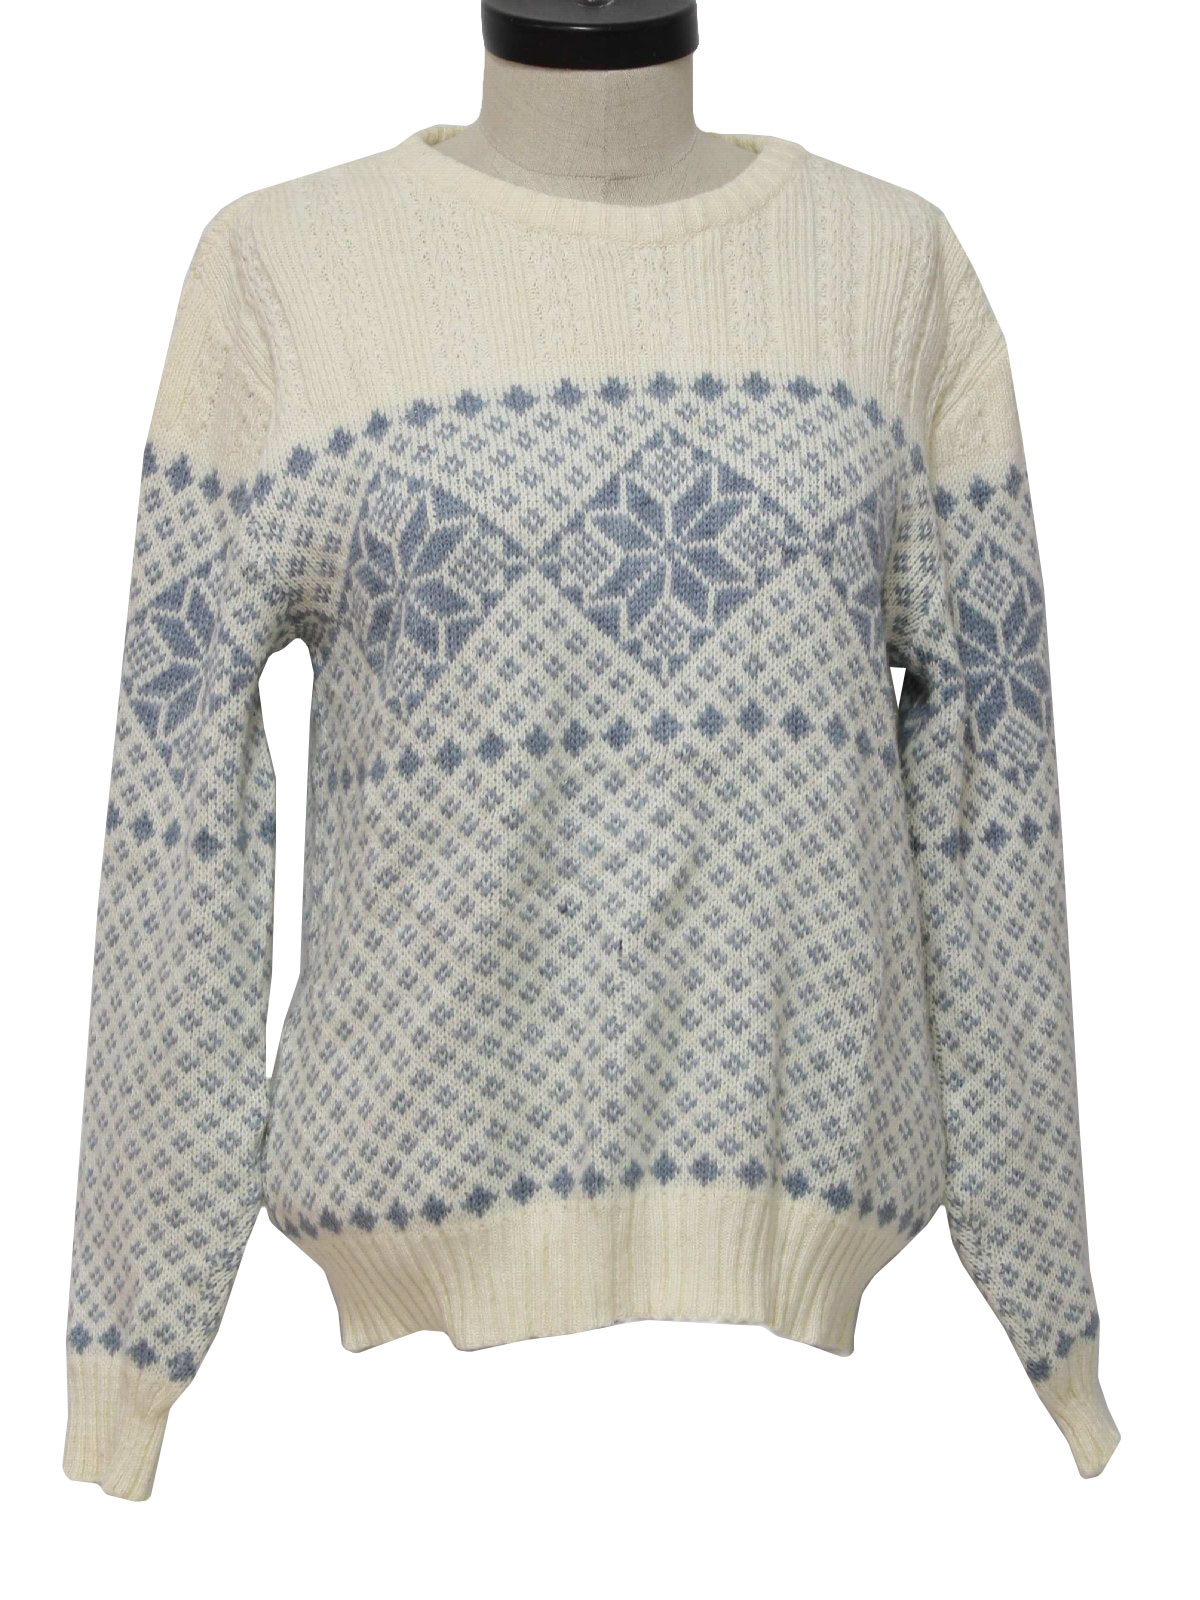 70s Retro Sweater: 70s -Rob Winter- Womens winter white and grey ...